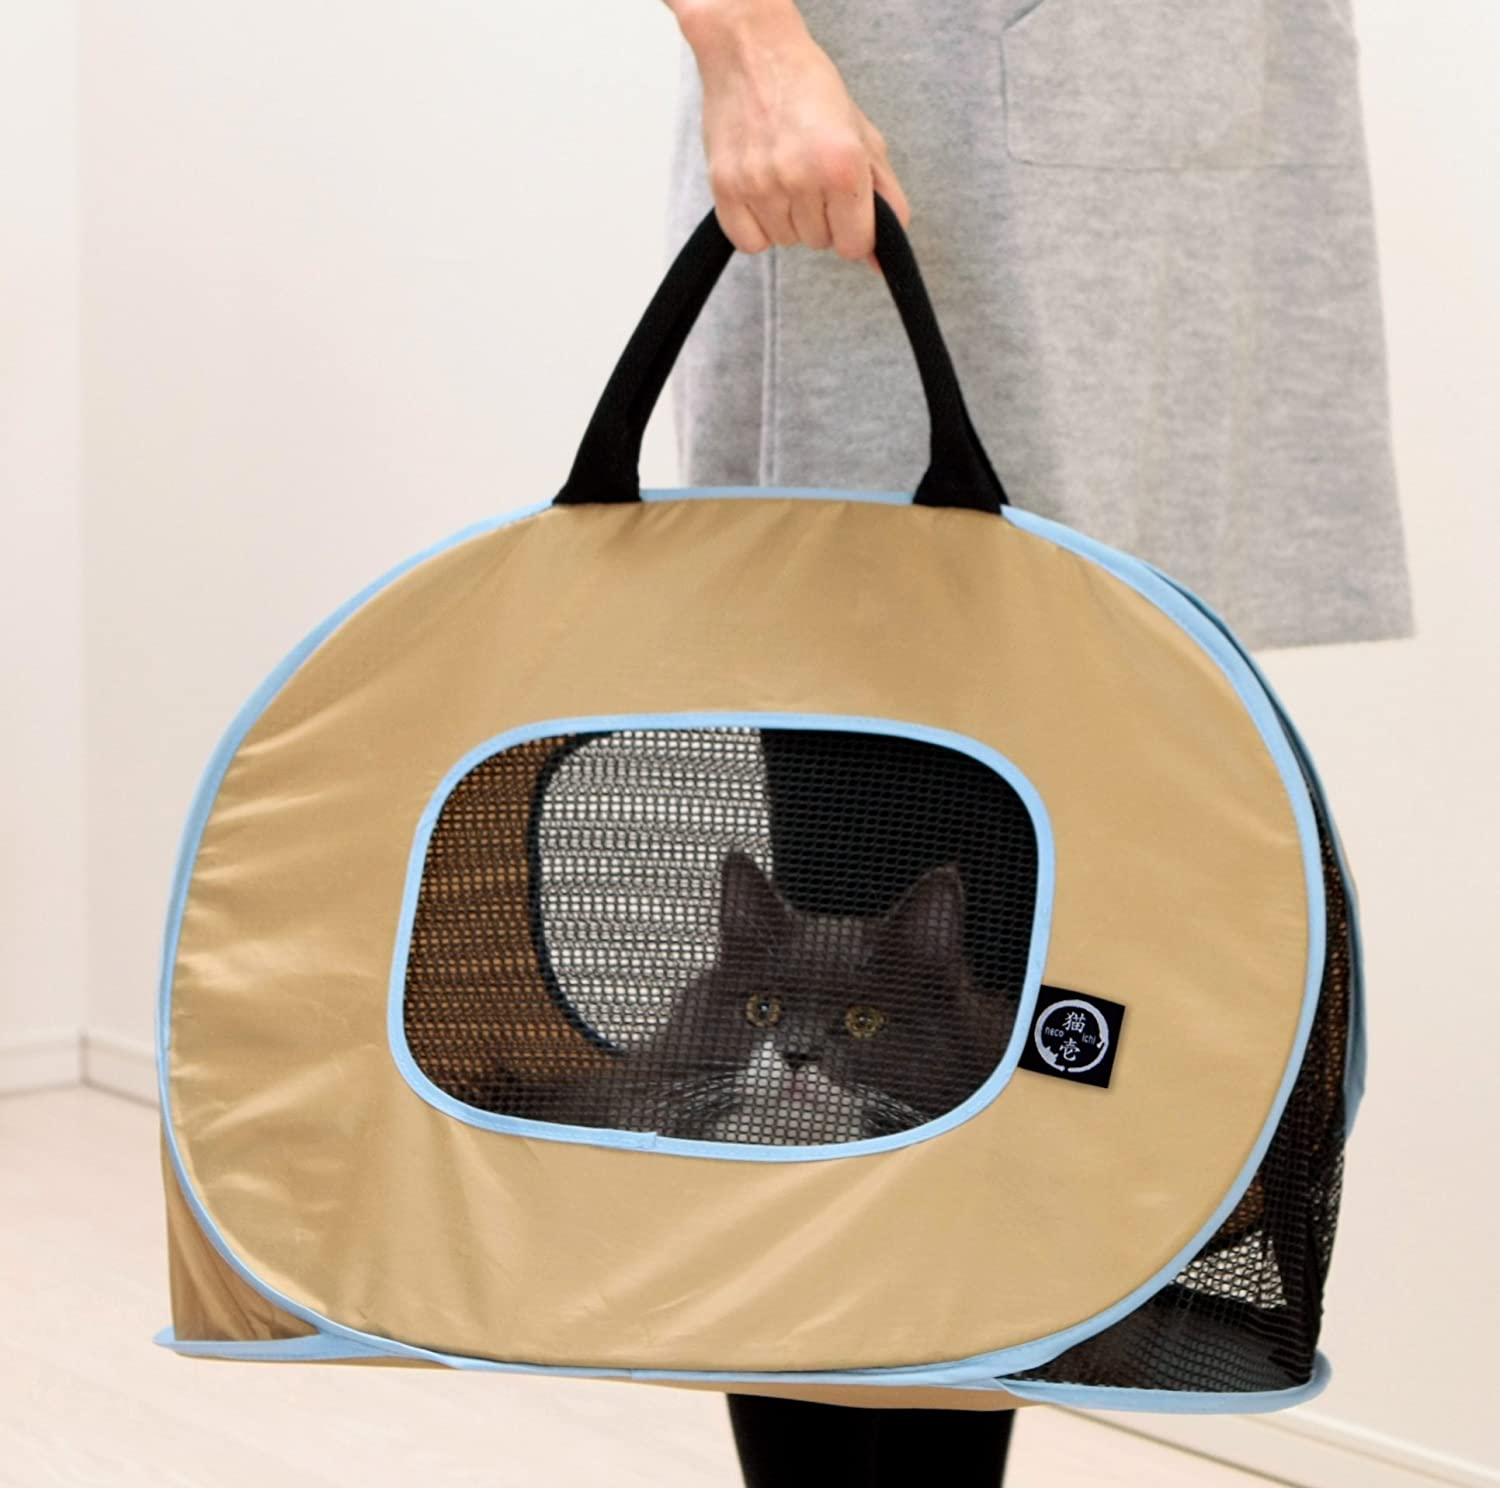 Portable Ultra Light Cat Carrier